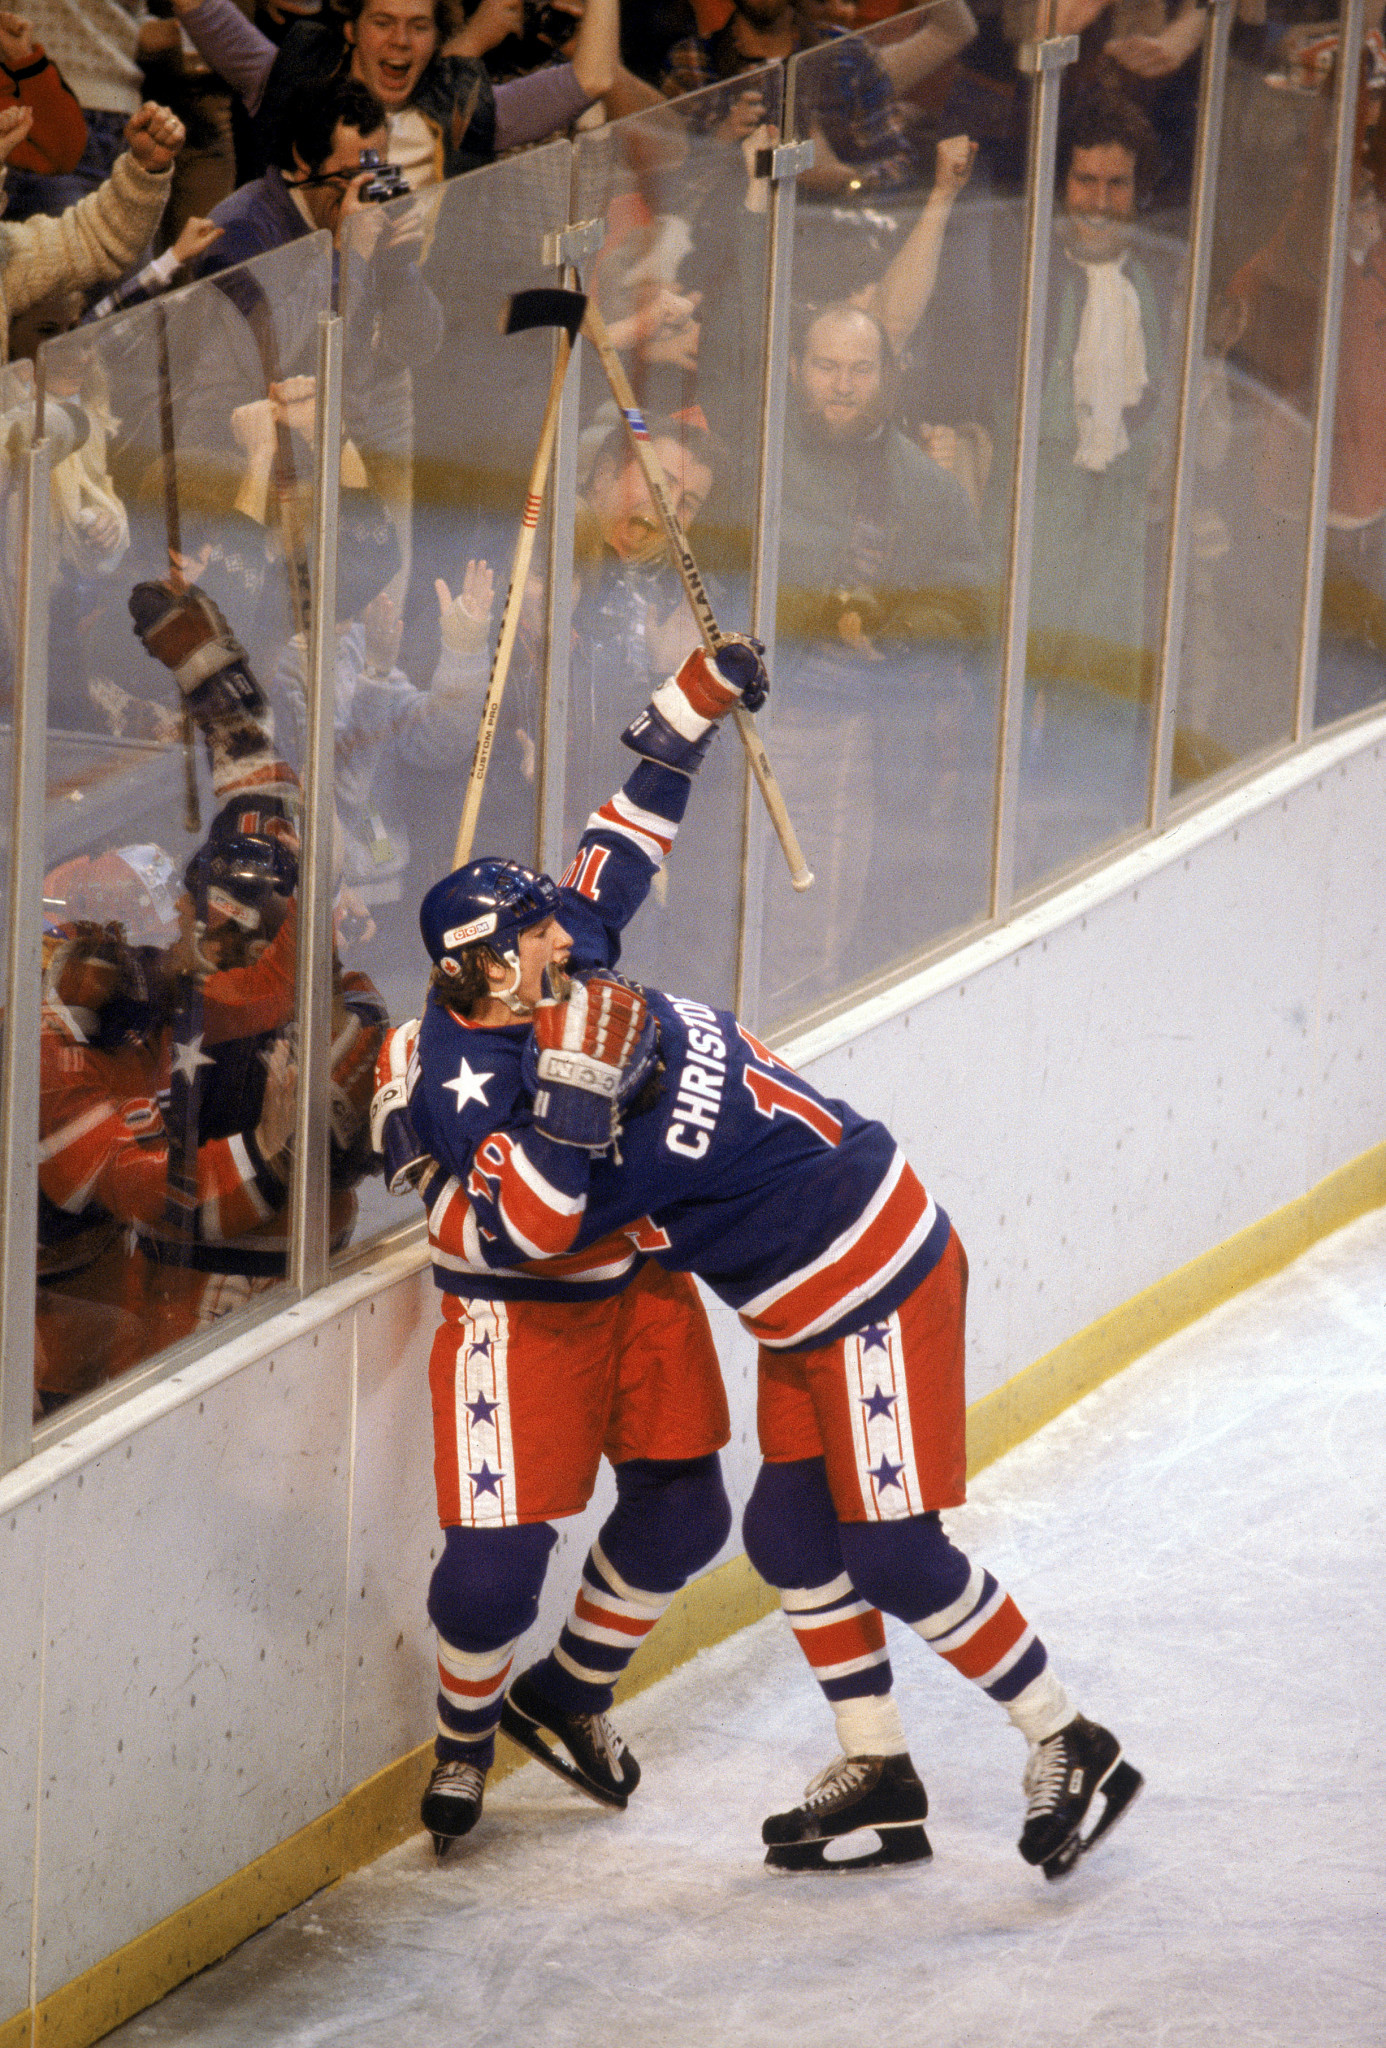 Steve Christoff celebrates his goal in the United States' 4-2 victory over Finland which clinched them the Olympic gold medal at Lake Placid 1980 ©Getty Images